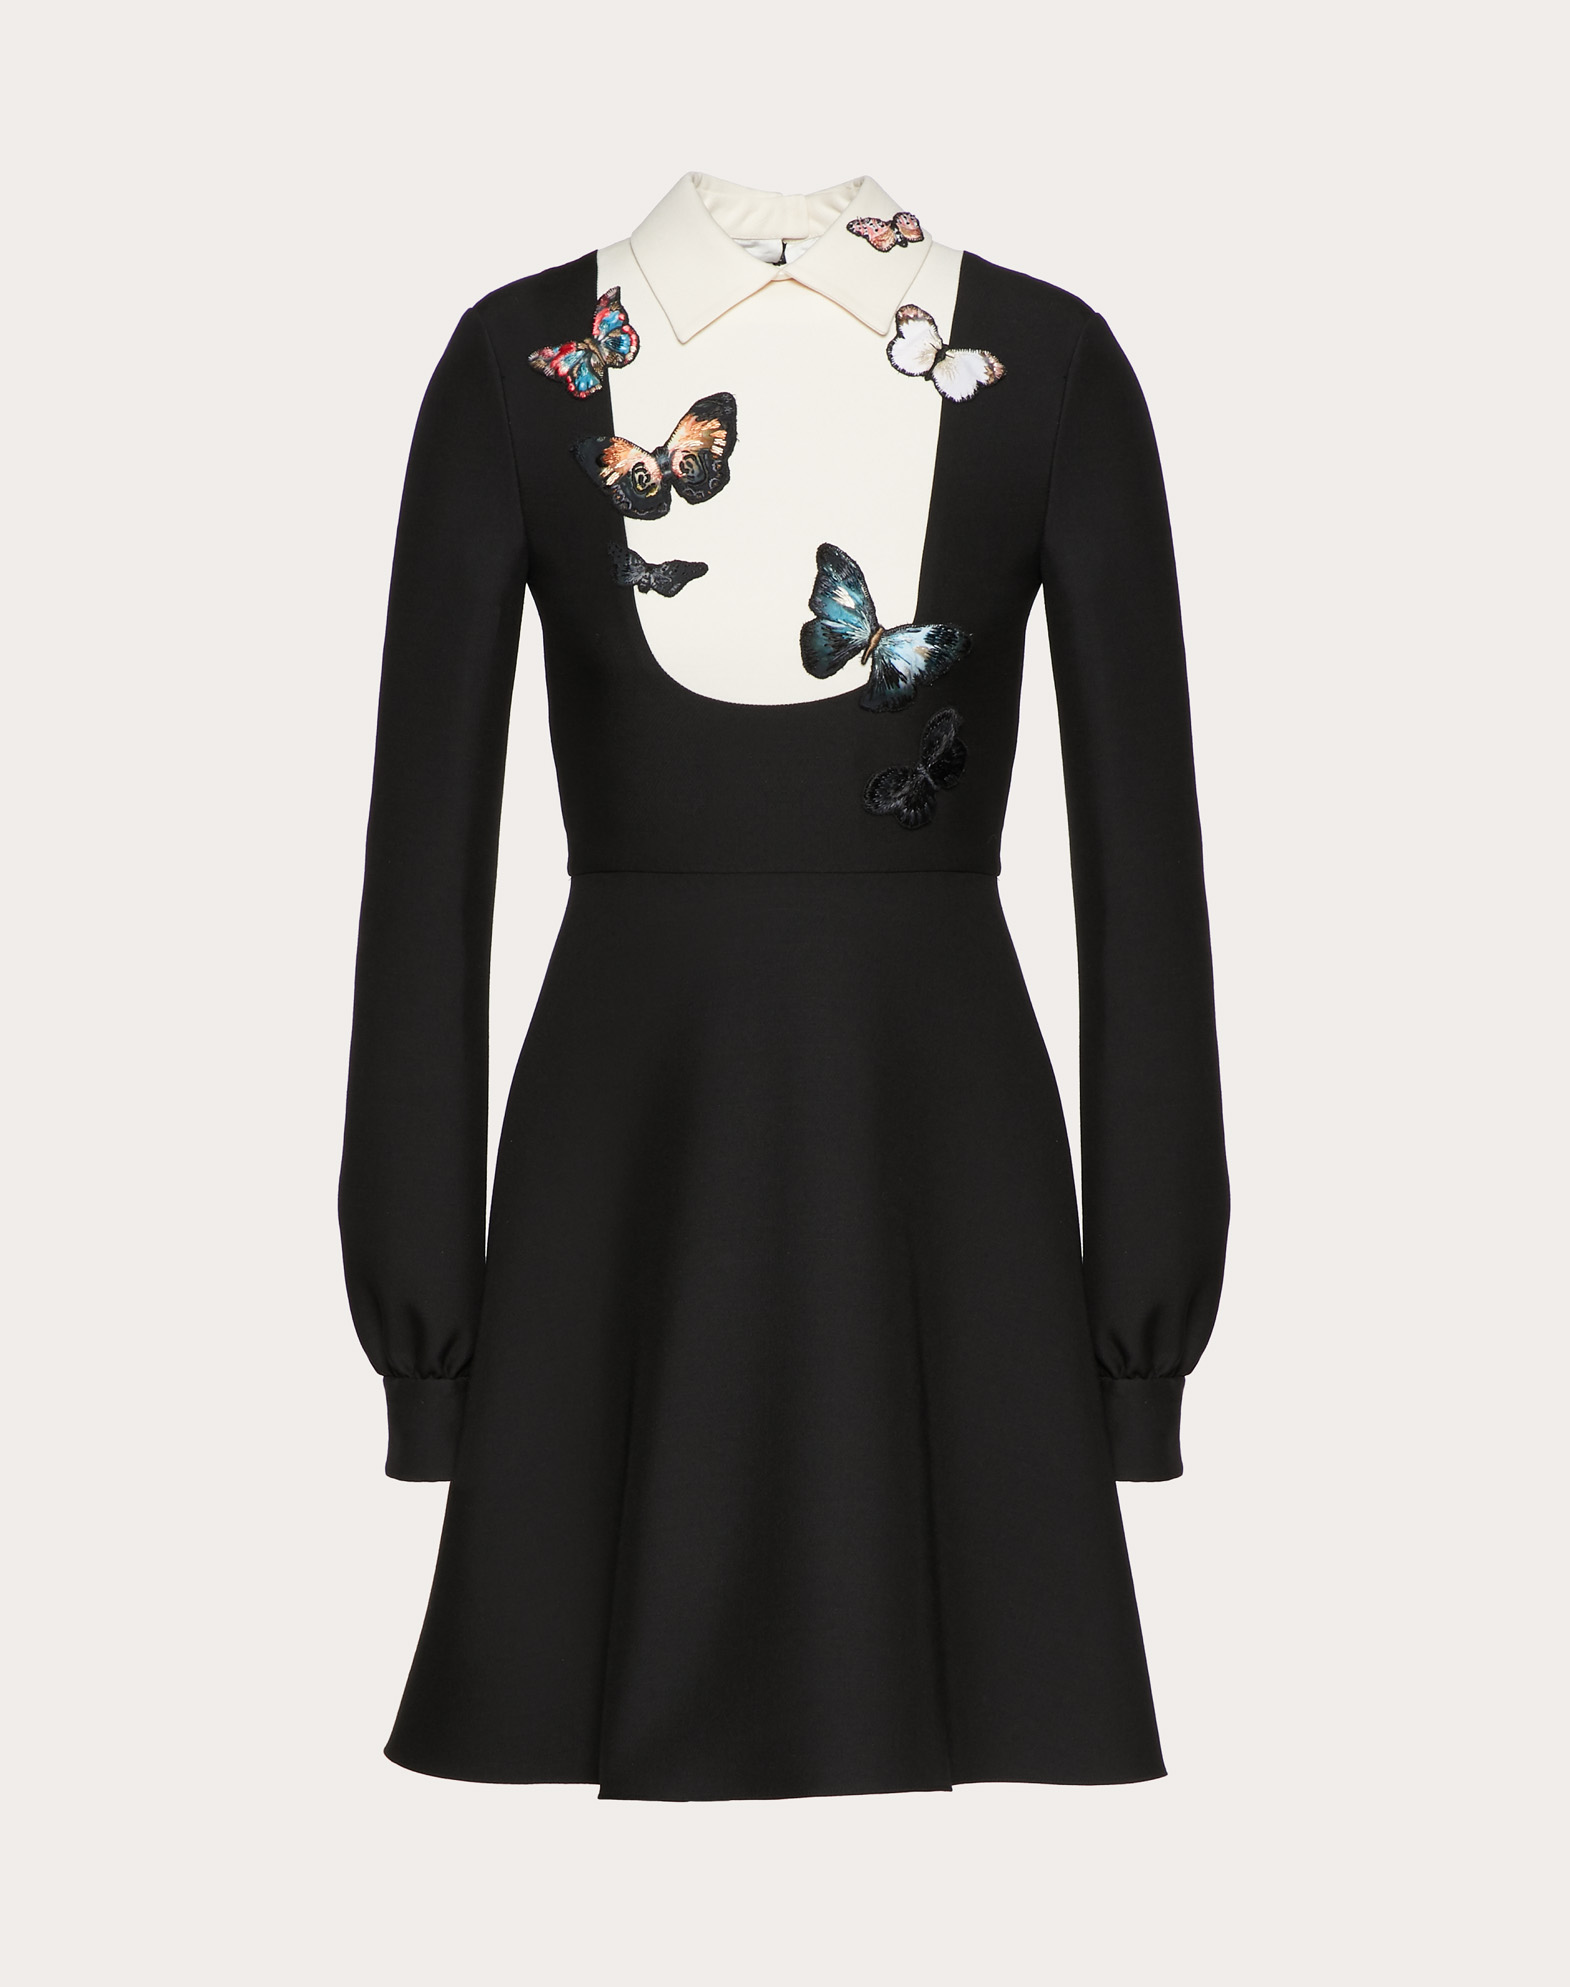 CREPE COUTURE DRESS WITH BUTTERFLY EMBROIDERY